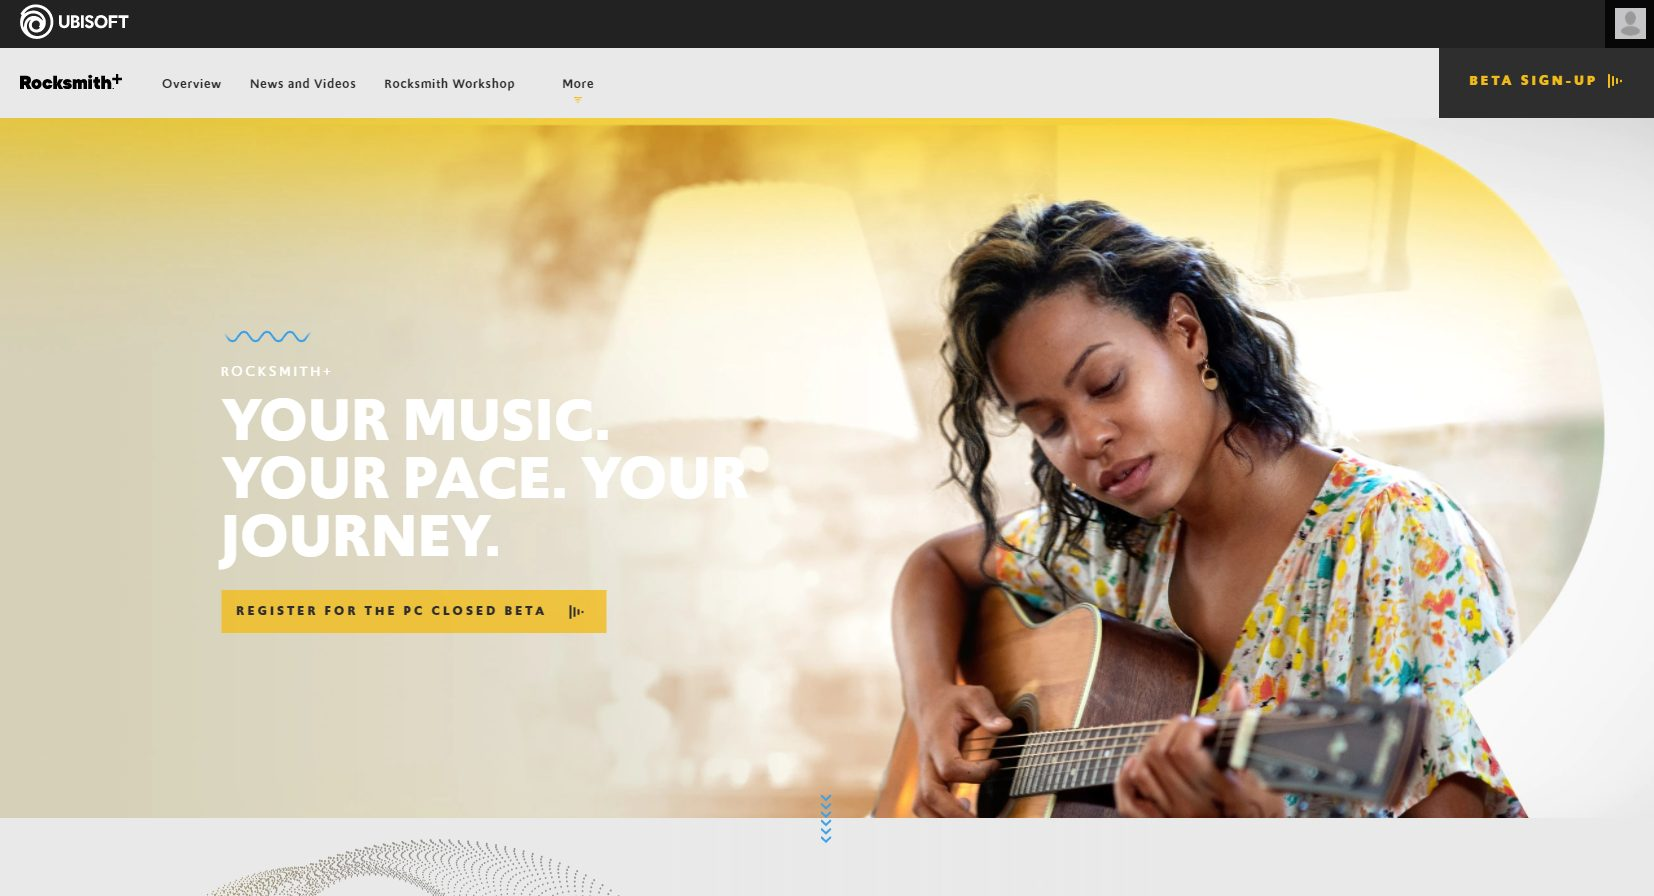 Rocksmith Plus Home Page as of June 2021